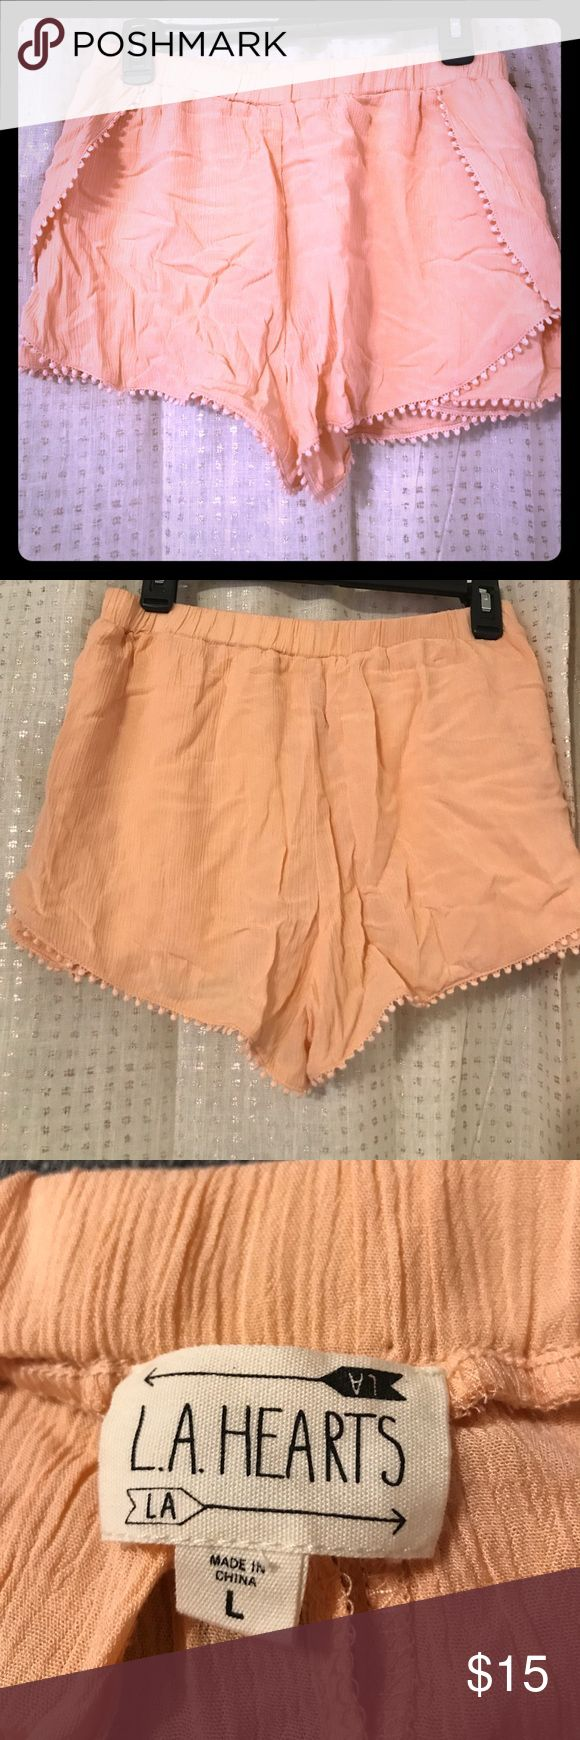 L.A. Hearts Peach Shorts Size Large 100% rayon shell, 100% cotton contrast. Lightweight soft peach colored shorts. Never worn. Perfect for spring & summer! LA Hearts Shorts